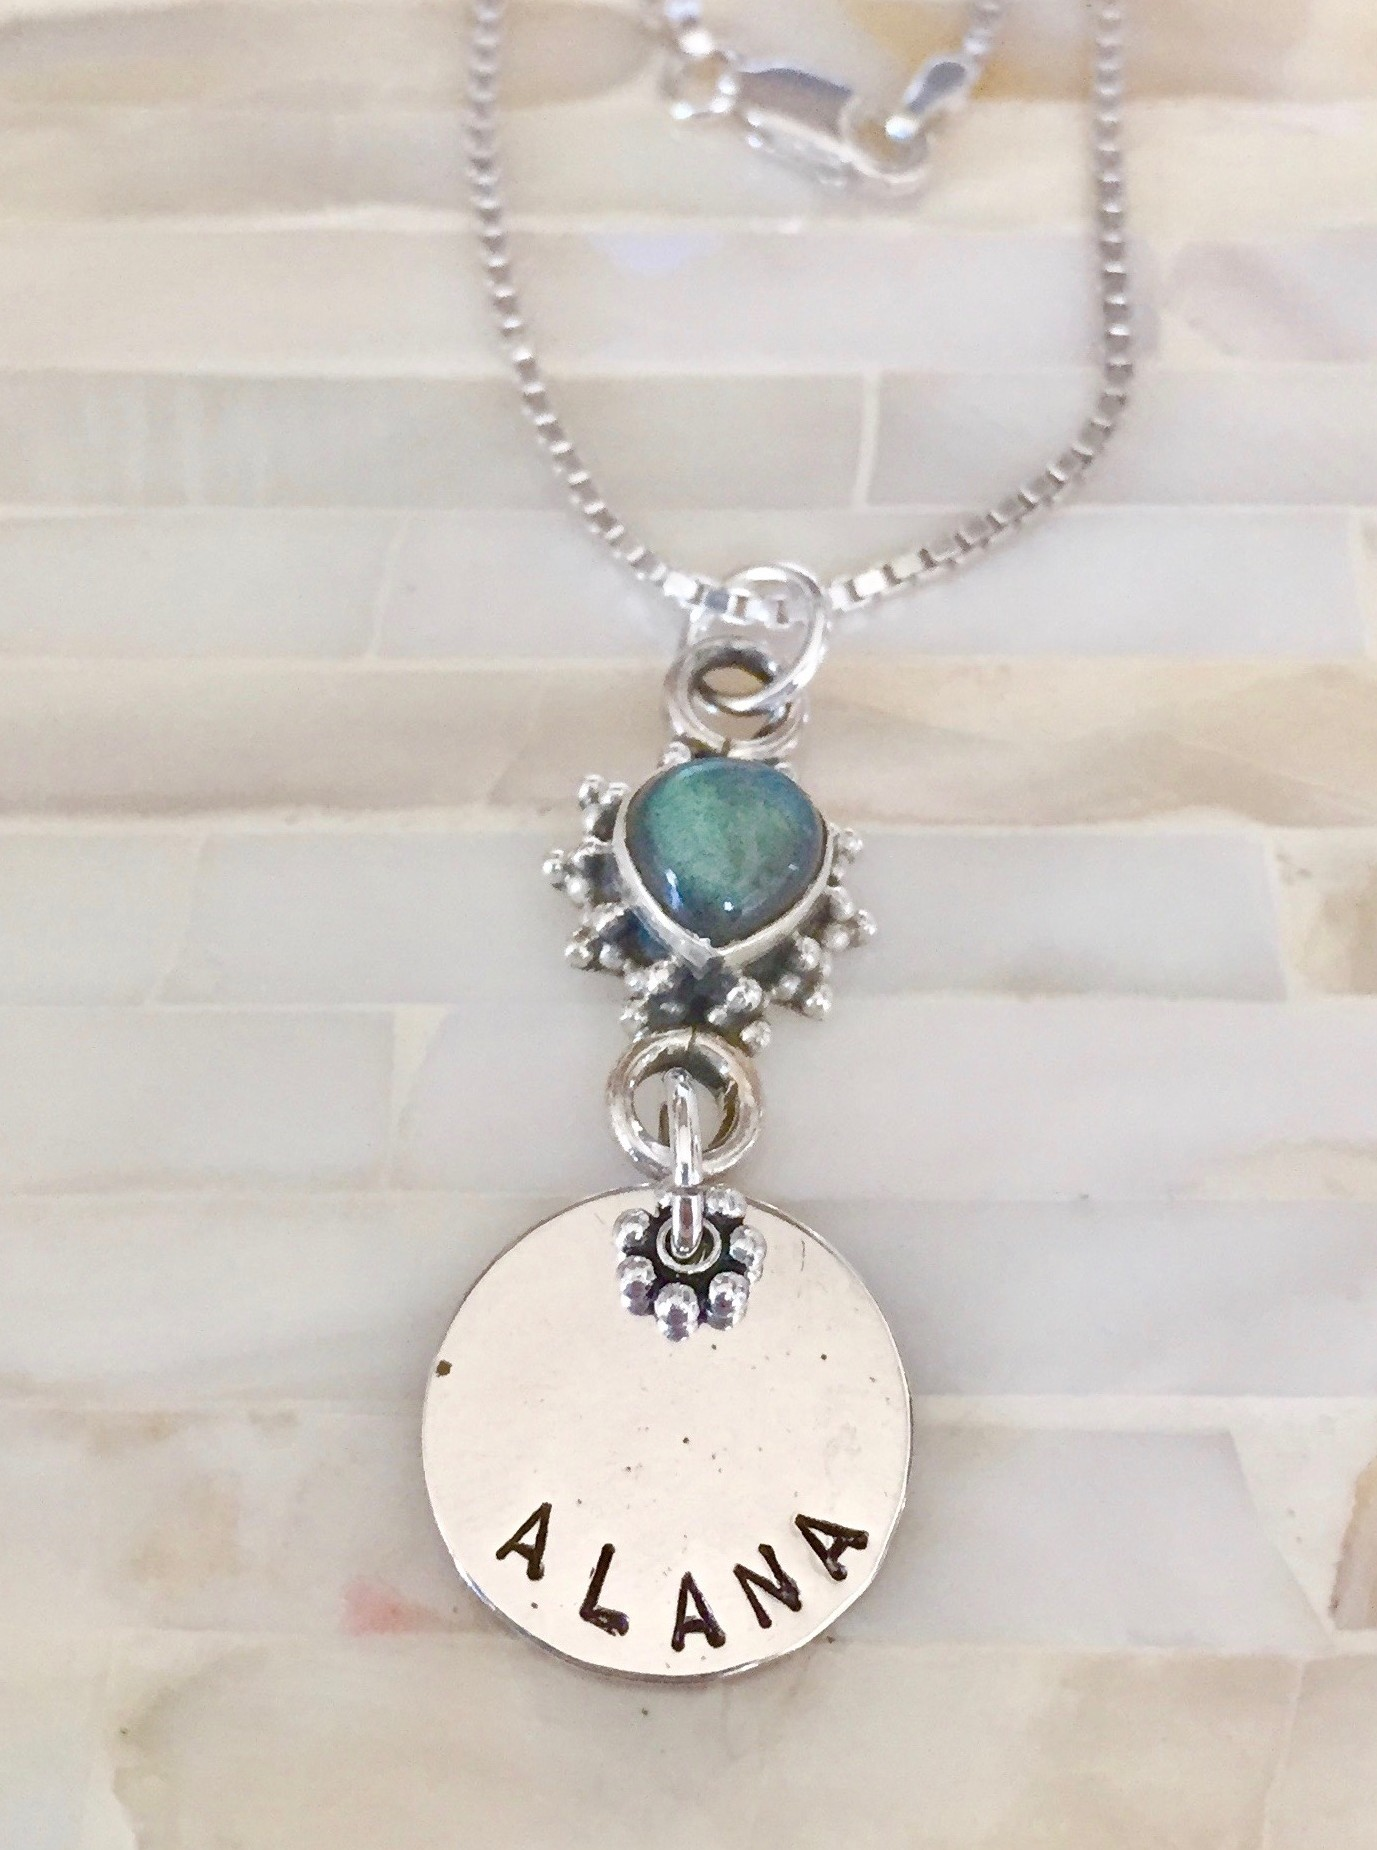 Personalized Gemstone Name Necklace- Moonstone gemstone